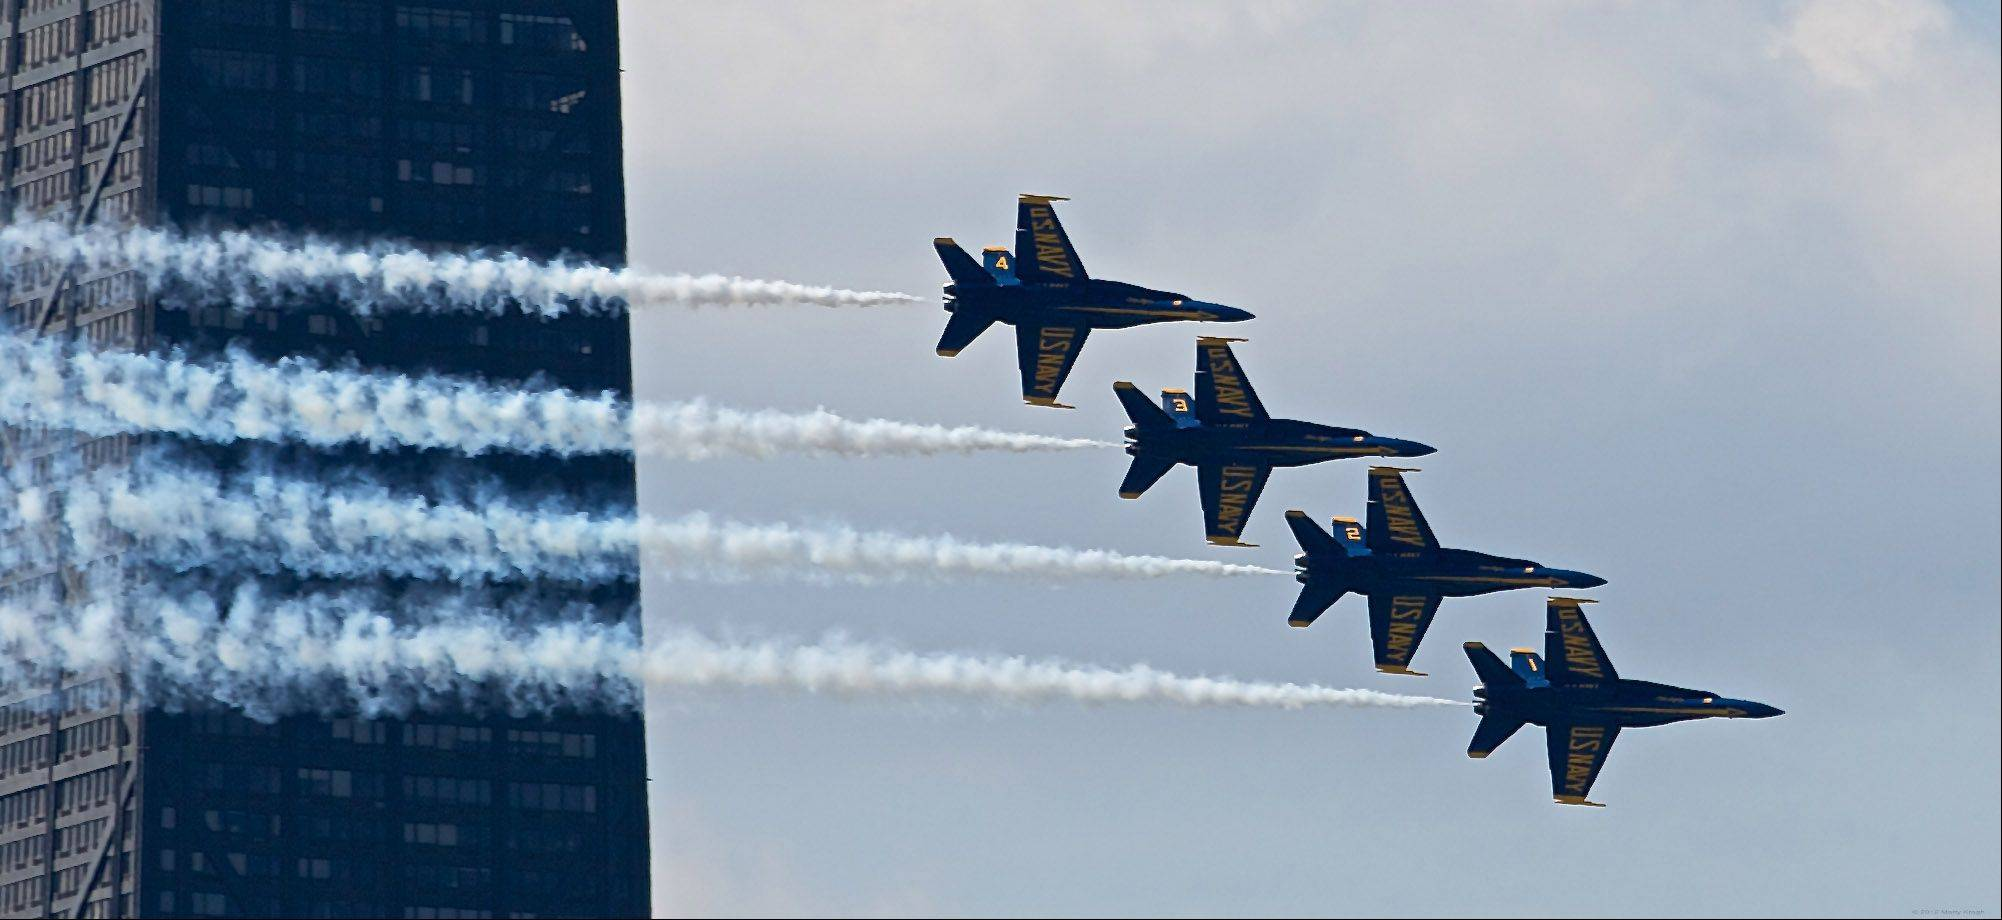 The Navy Blue Angels fly past the John Hancock building on August 18th at the 2012 Chicago Air & Water show.